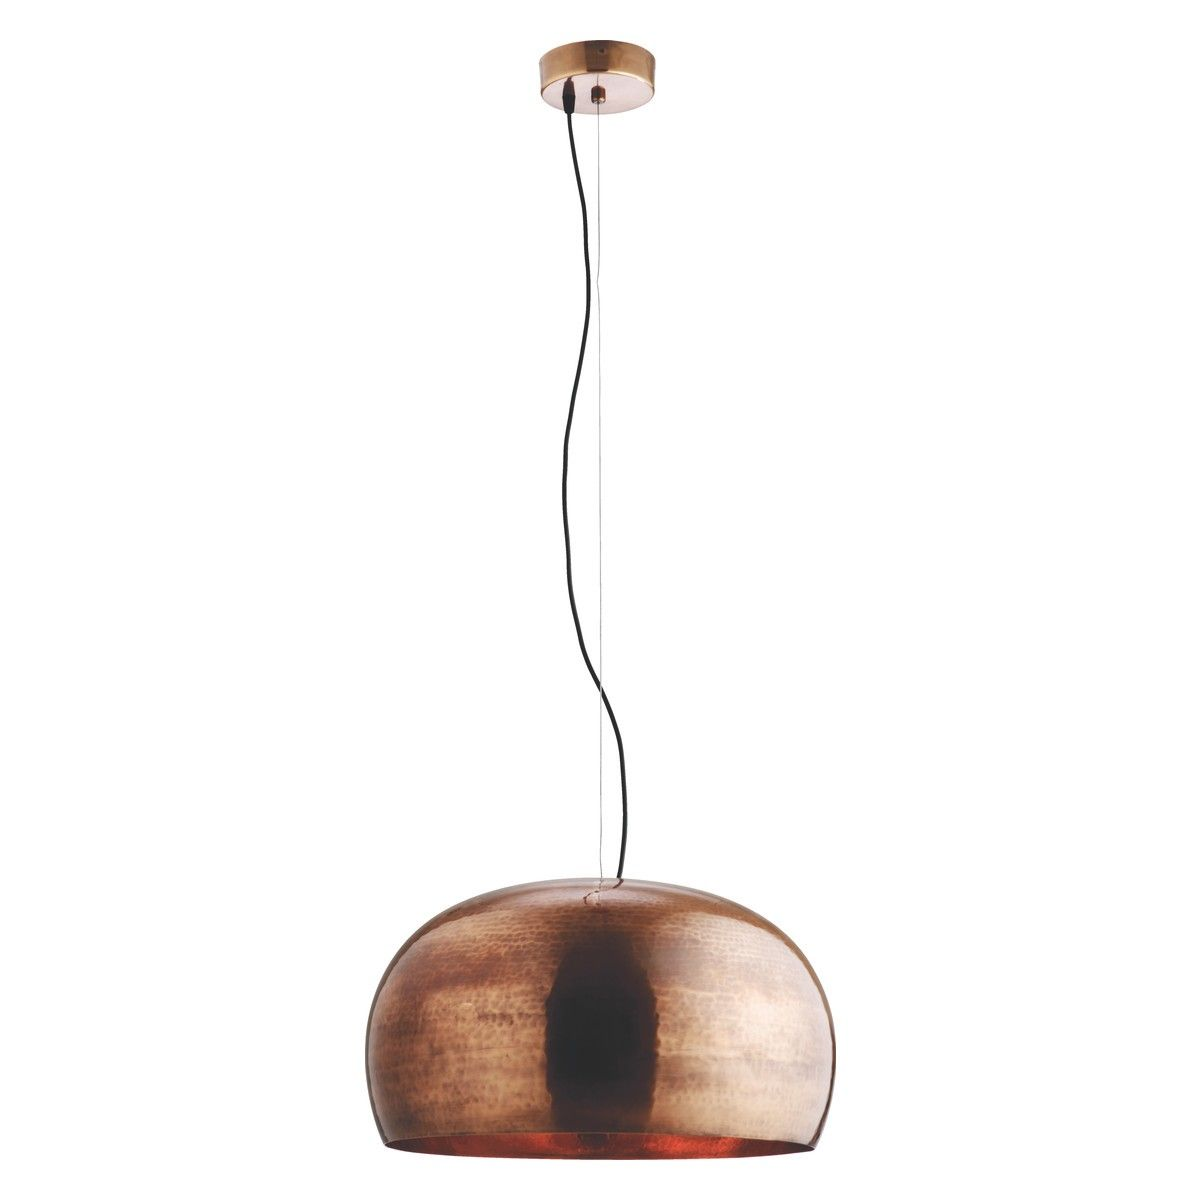 Large cut out dome metal lighting pendant shades cream - Marteau Large Copper Coated Brass Ceiling Light